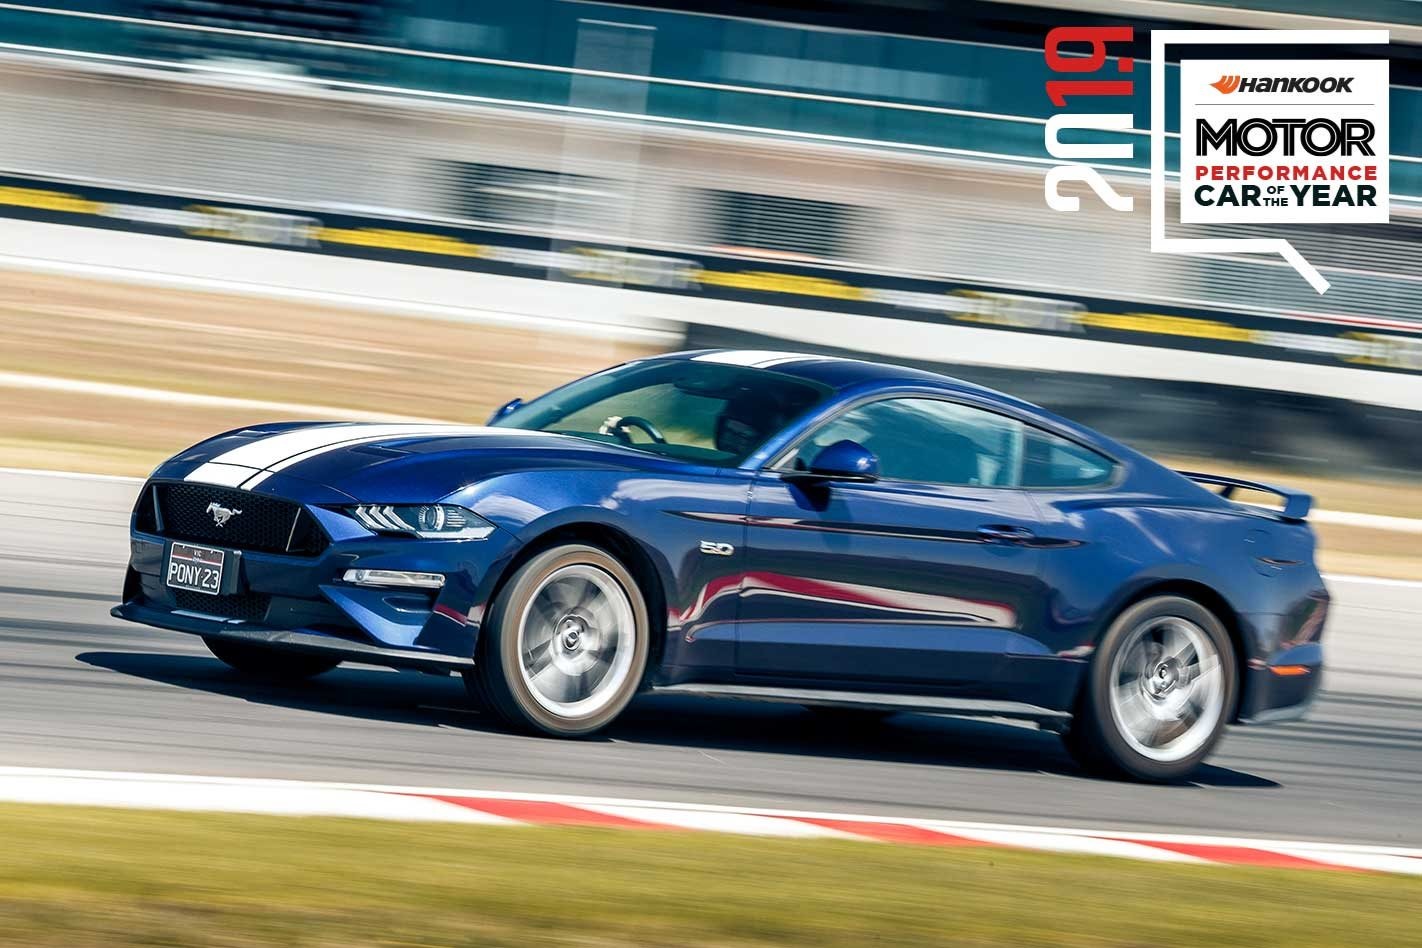 Ford mustang gt performance car of the year 2019 9th place